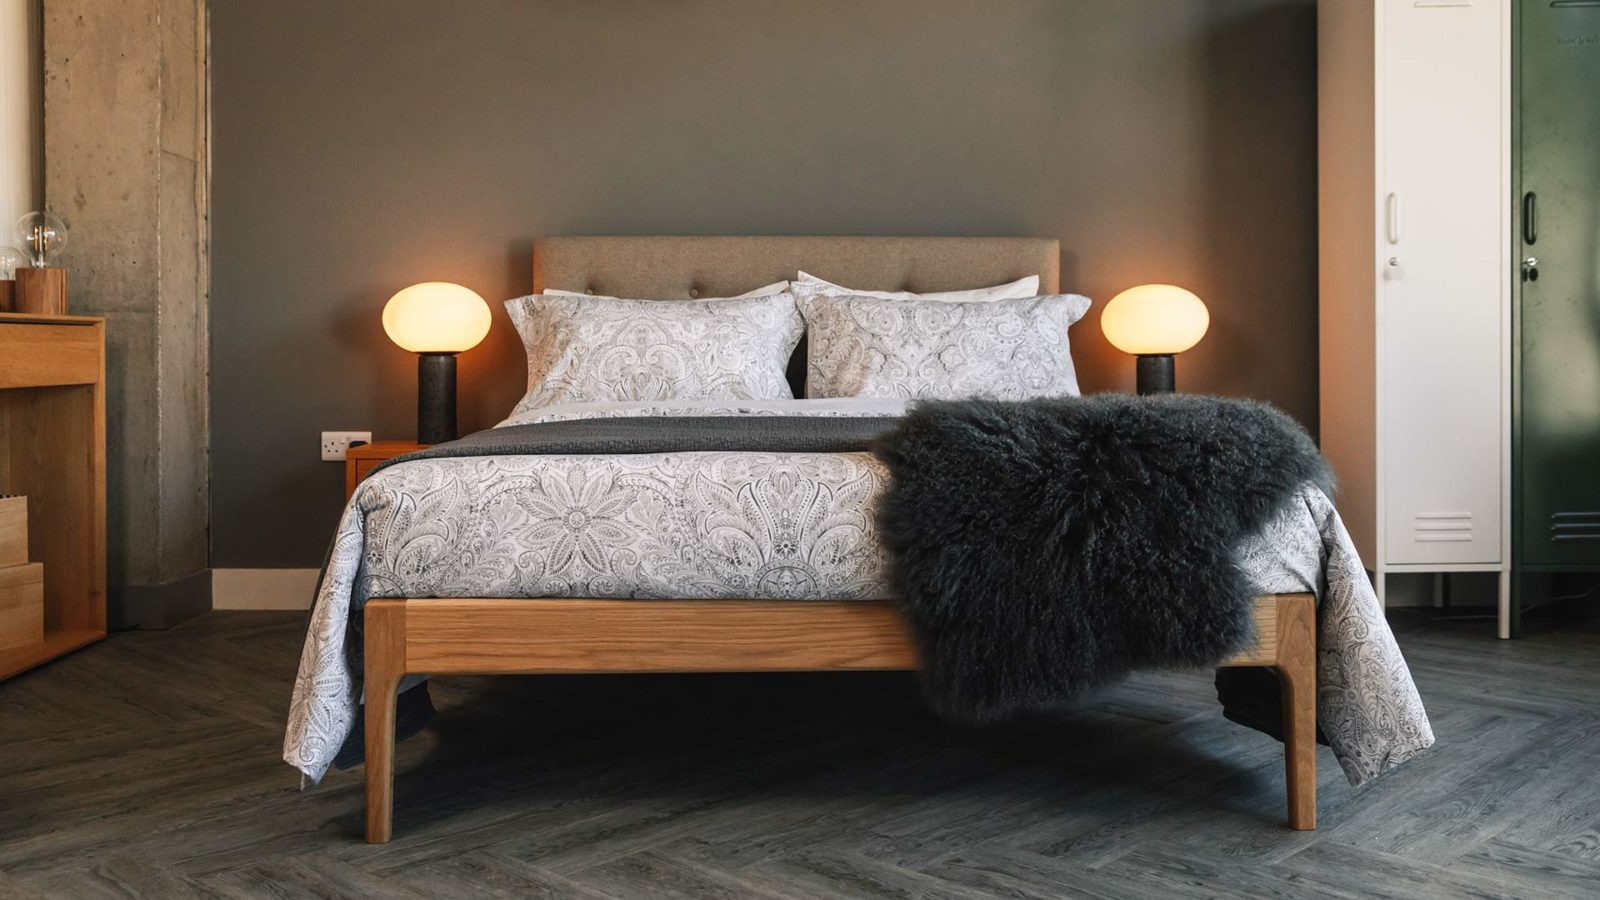 Scandi style bedroom featuring our oak Bloomsbury bed in Kingsize